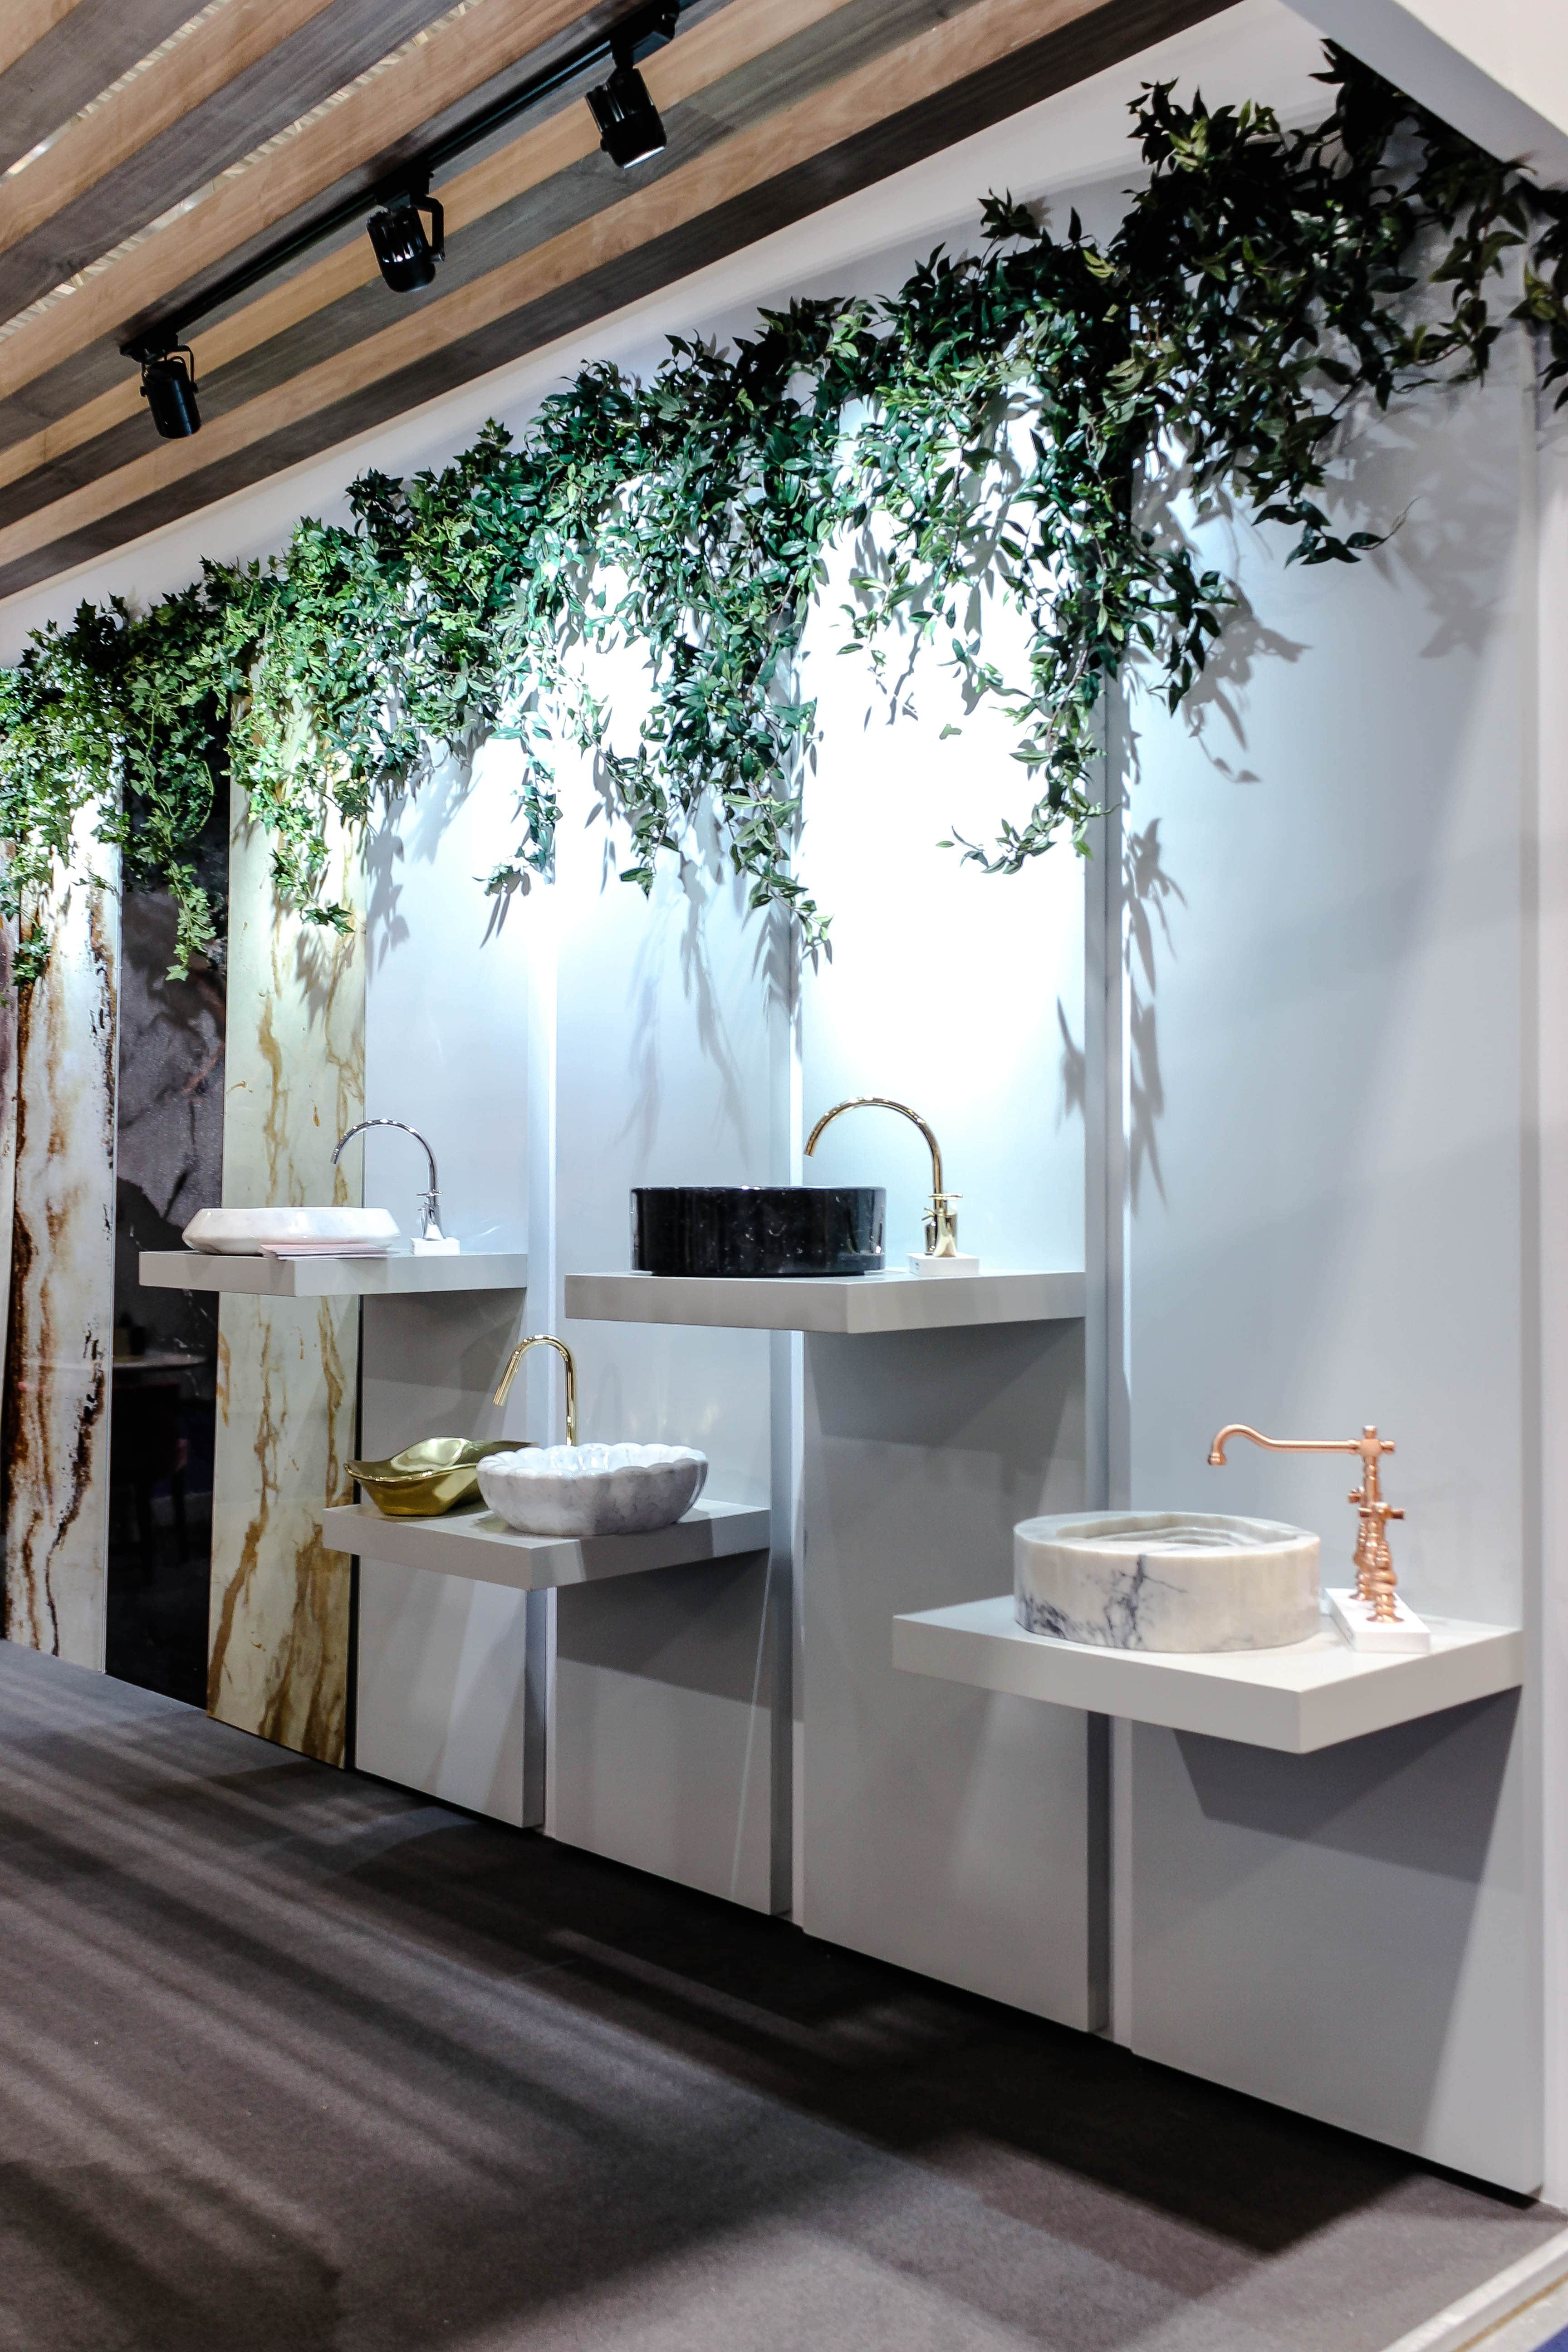 Design Fairs: Events To Follow In Fall 2021 design fairs Design Fairs: Events To Follow In Fall 2021 cersaie 2019 16